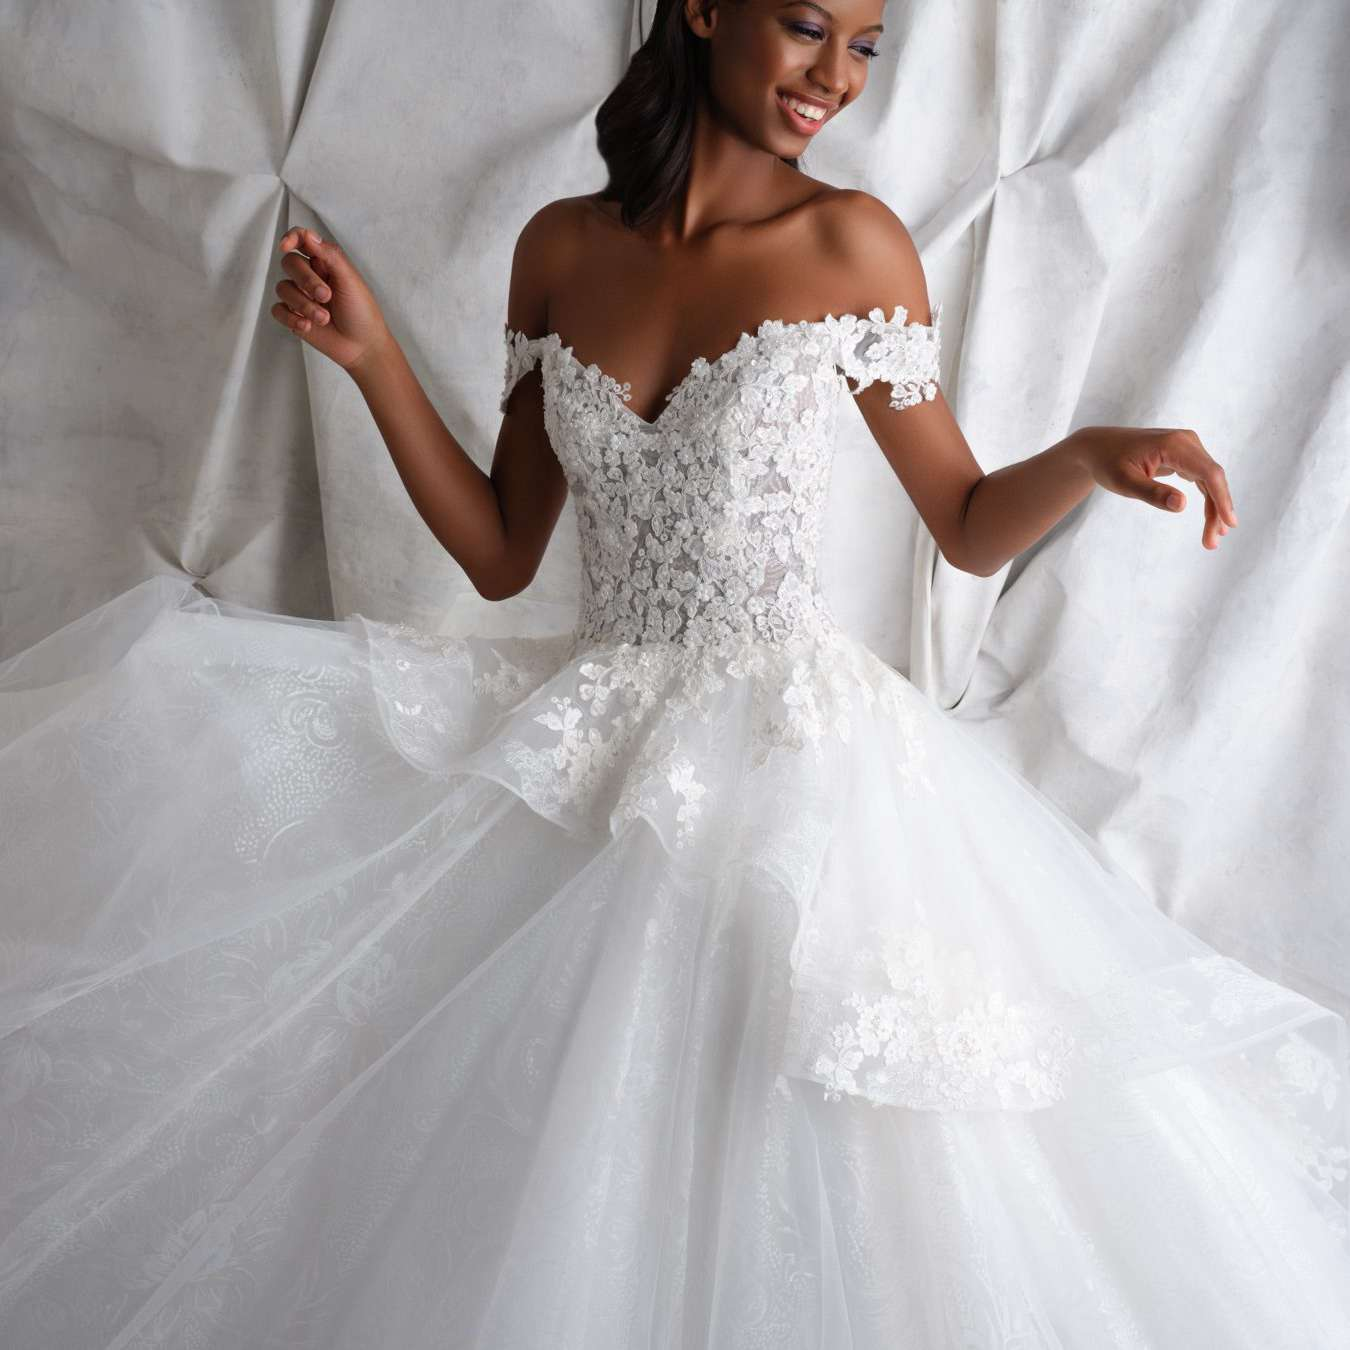 Model in off-the-shoulder gown with floral lace bodice and tulle skirt